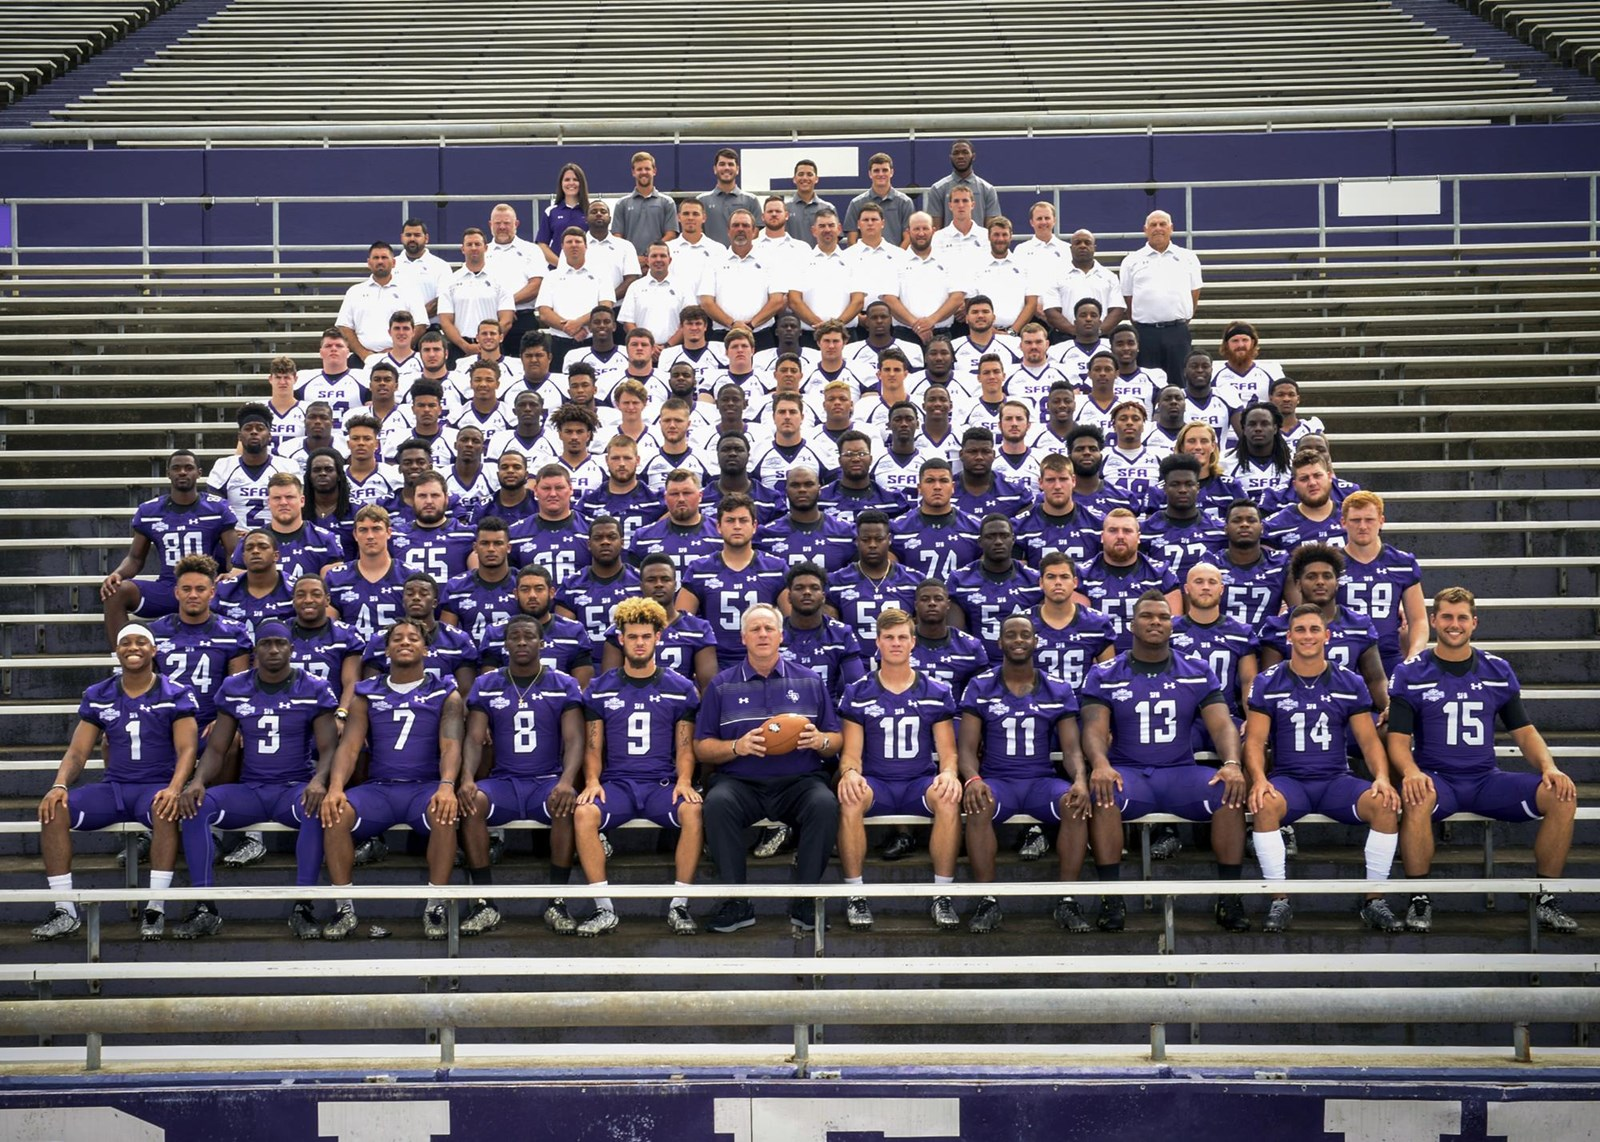 2017 Football Roster Stephen F Austin State University Athletics